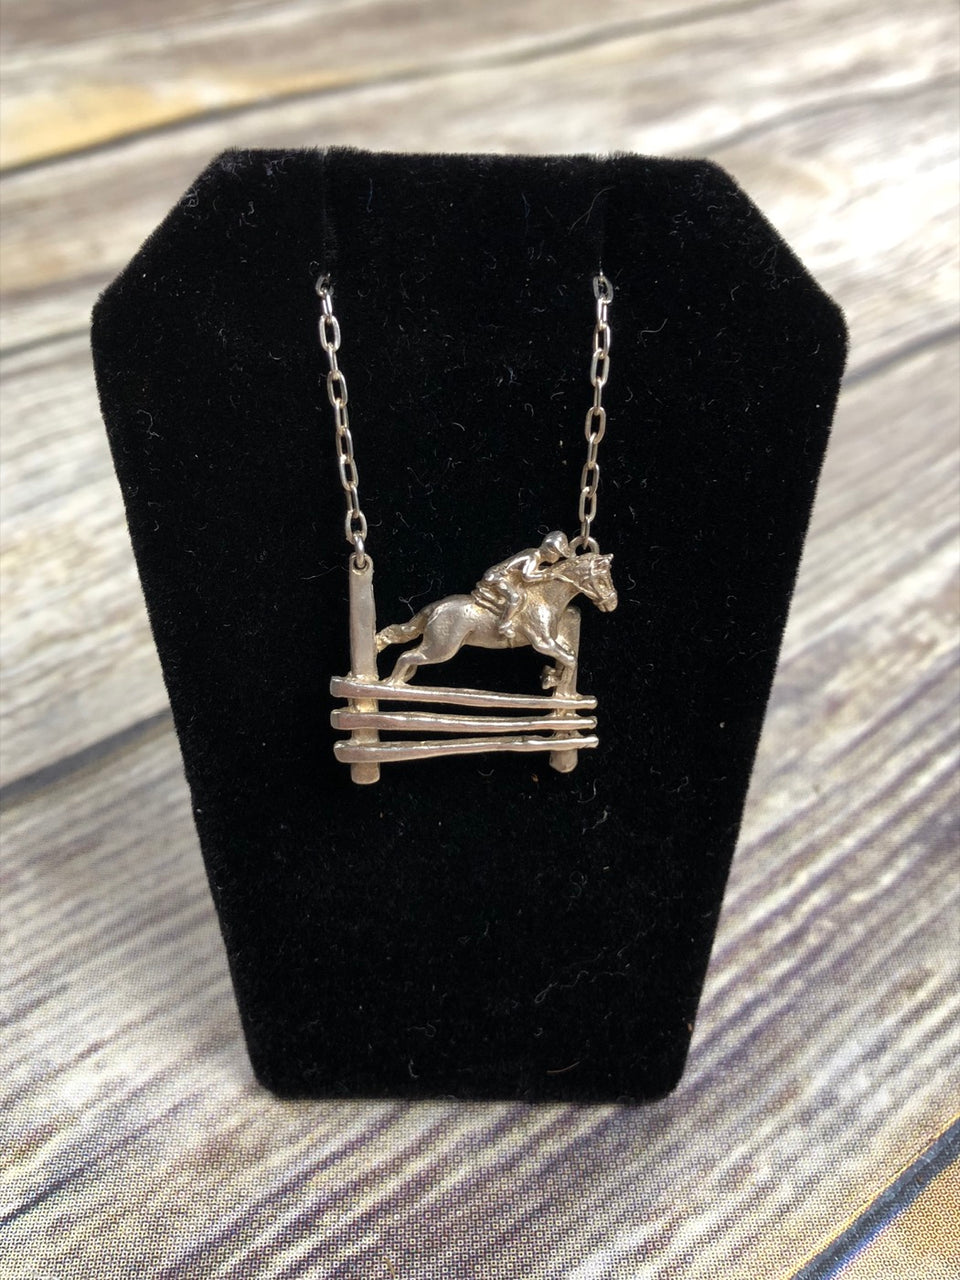 Jumping Horse Necklace in Sterling Silver/Cable Chain - 16.5""